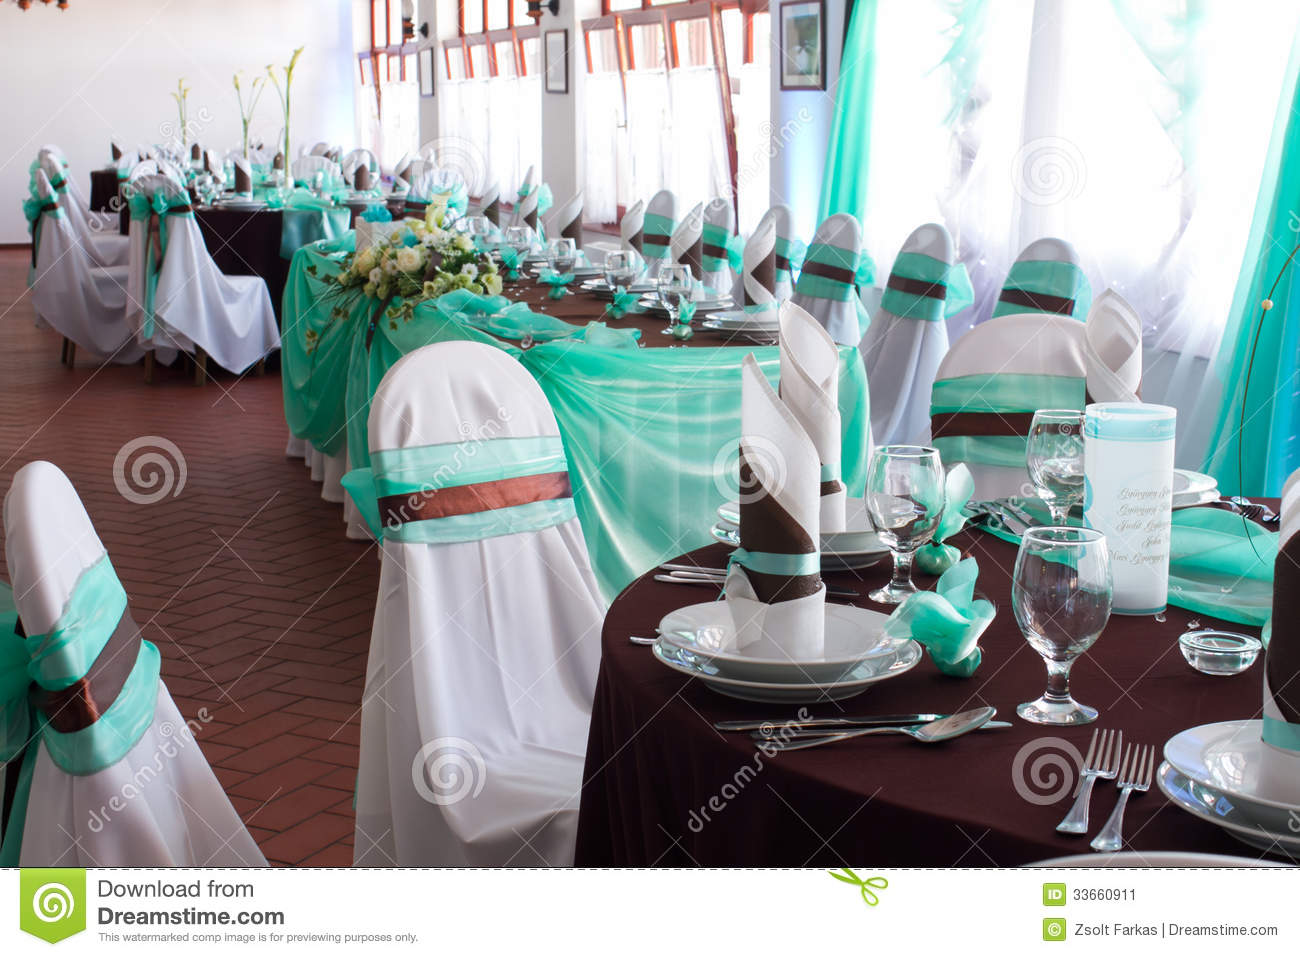 Wedding reception place ready to receive guests stock image image 33660911 - Deco table turquoise chocolat ...